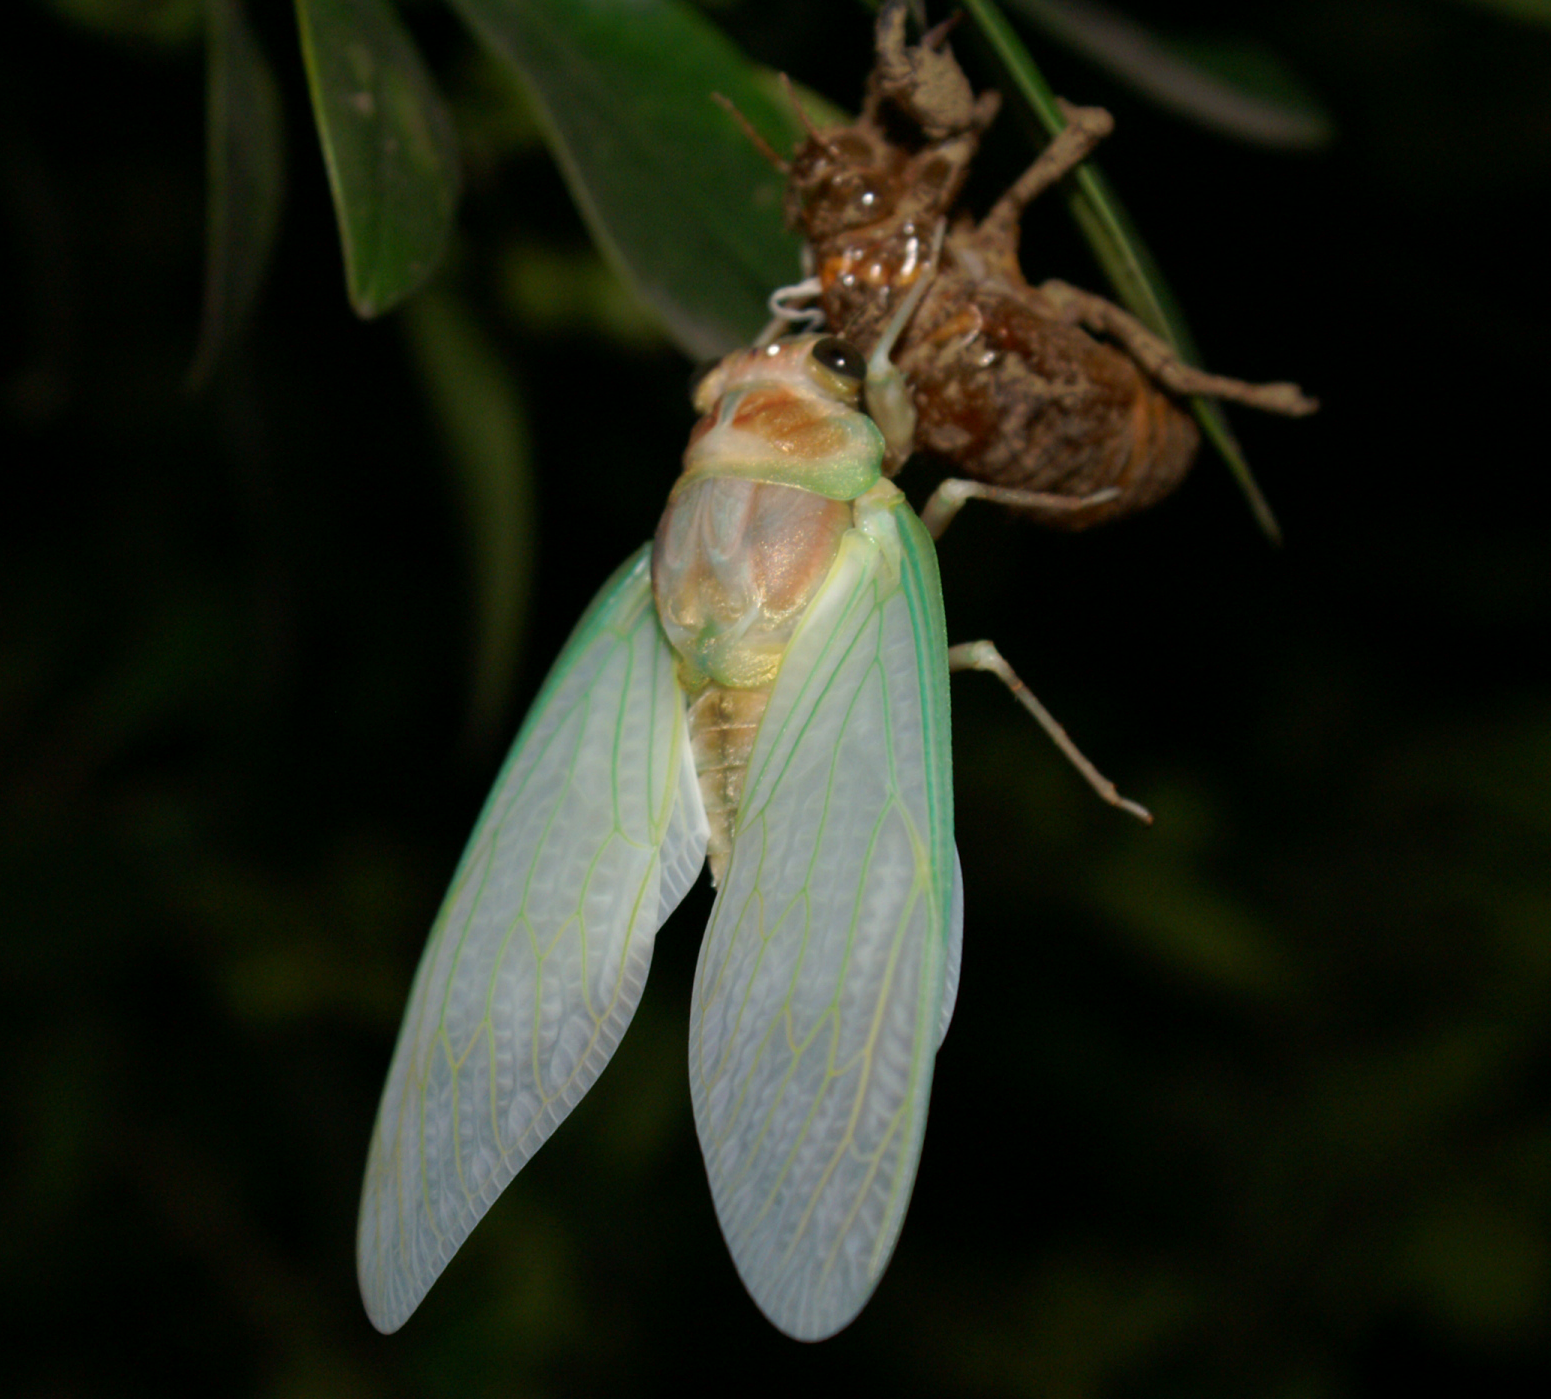 the cicada continuously sheds its skin